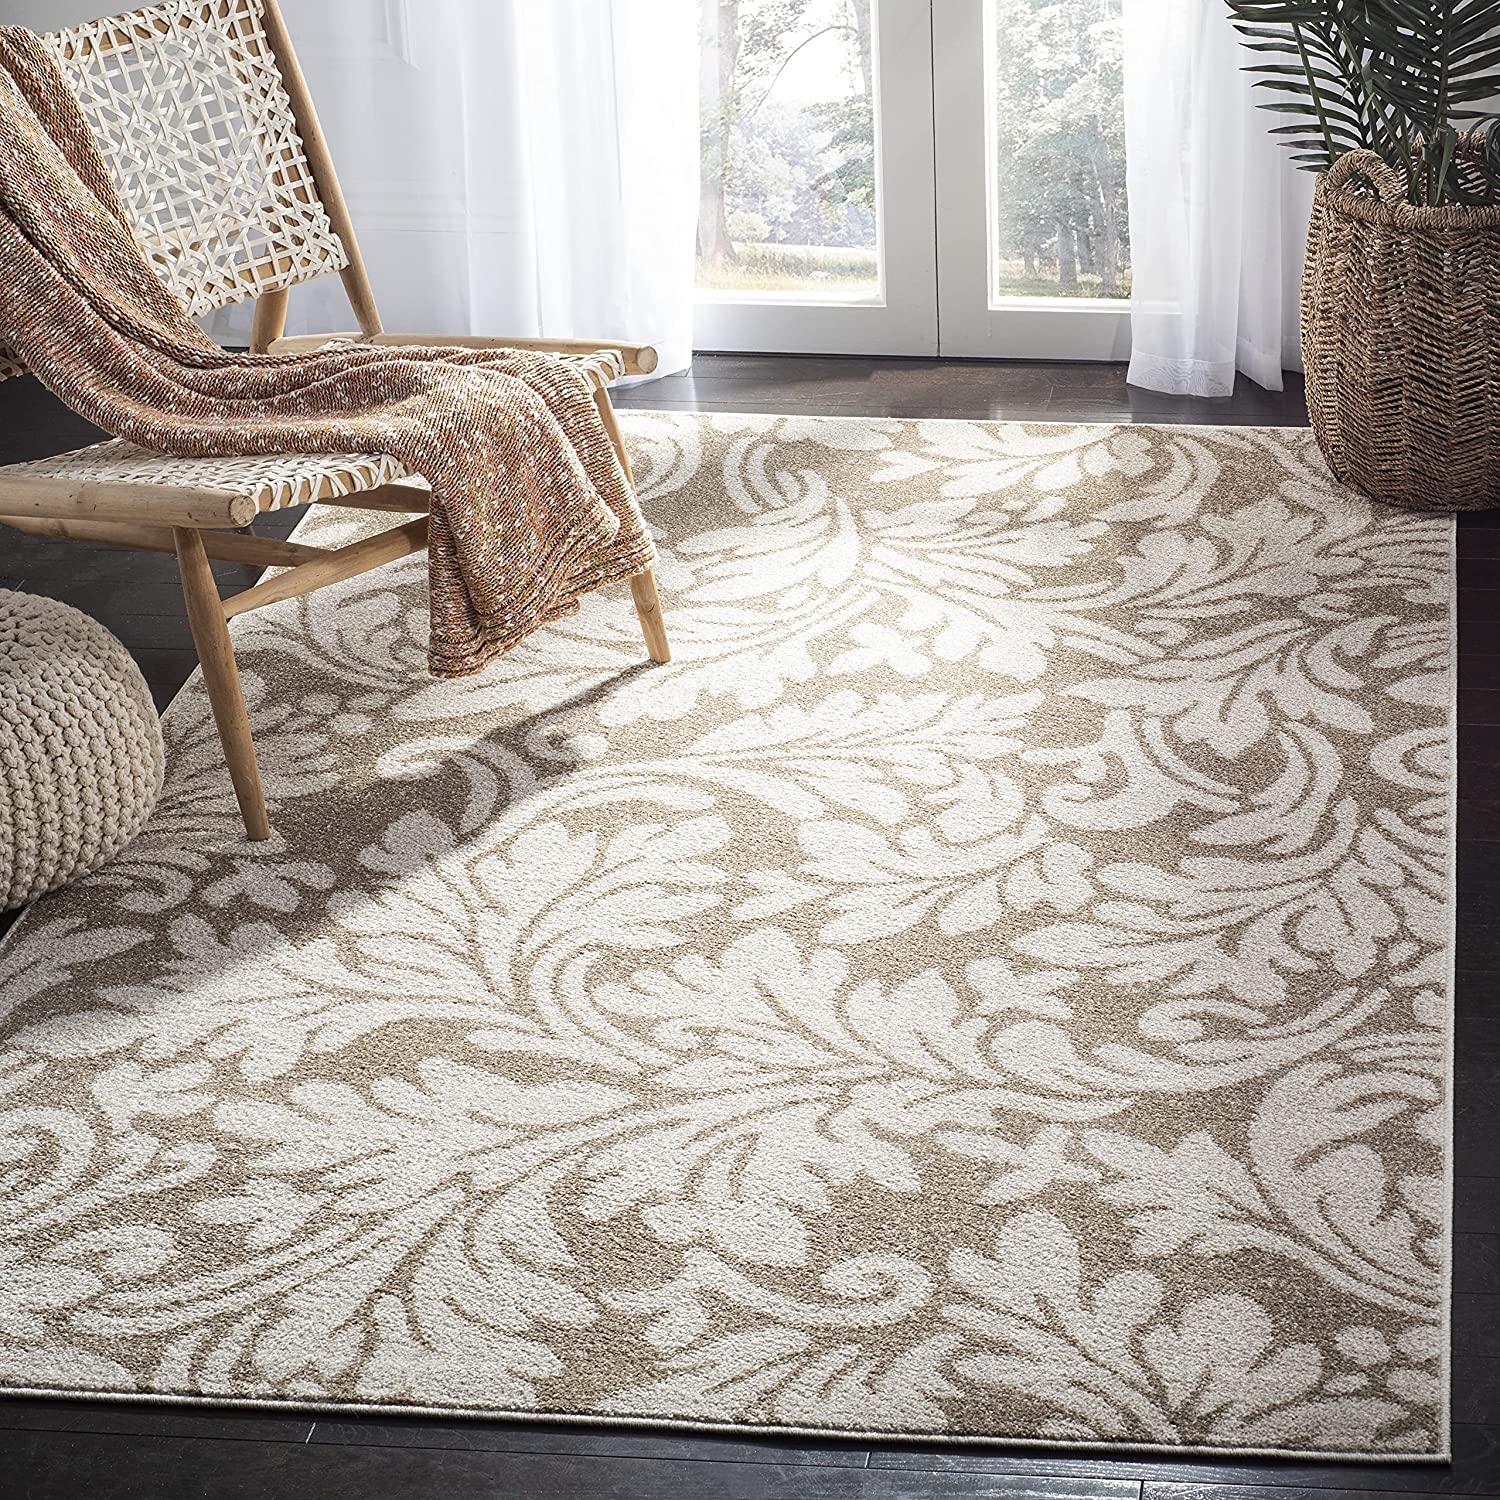 Safavieh Amherst Collection AMT425S Floral Non-Shedding Stain Resistant Living Room Bedroom Area Rug, 9' x 12', Wheat / Beige